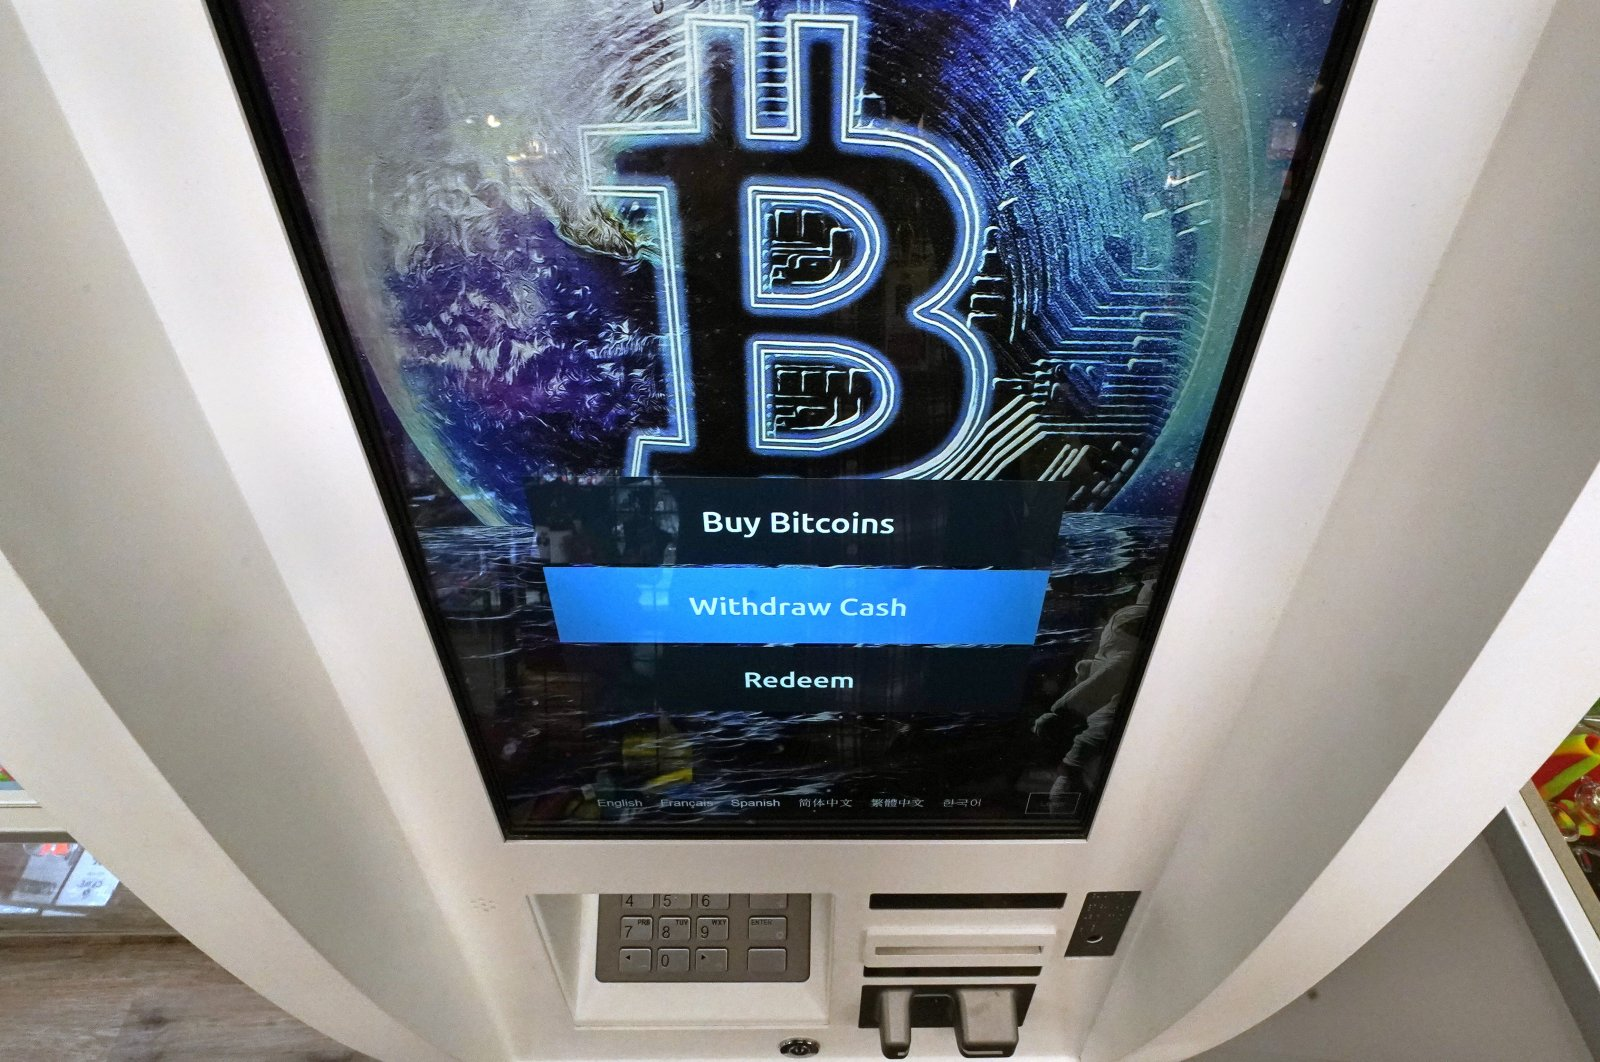 The Bitcoin logo appears on the display screen of a cryptocurrency ATM at the Smoker's Choice store in Salem, New Hampshire, U.S.,Feb. 9, 2021. (AP Photo)